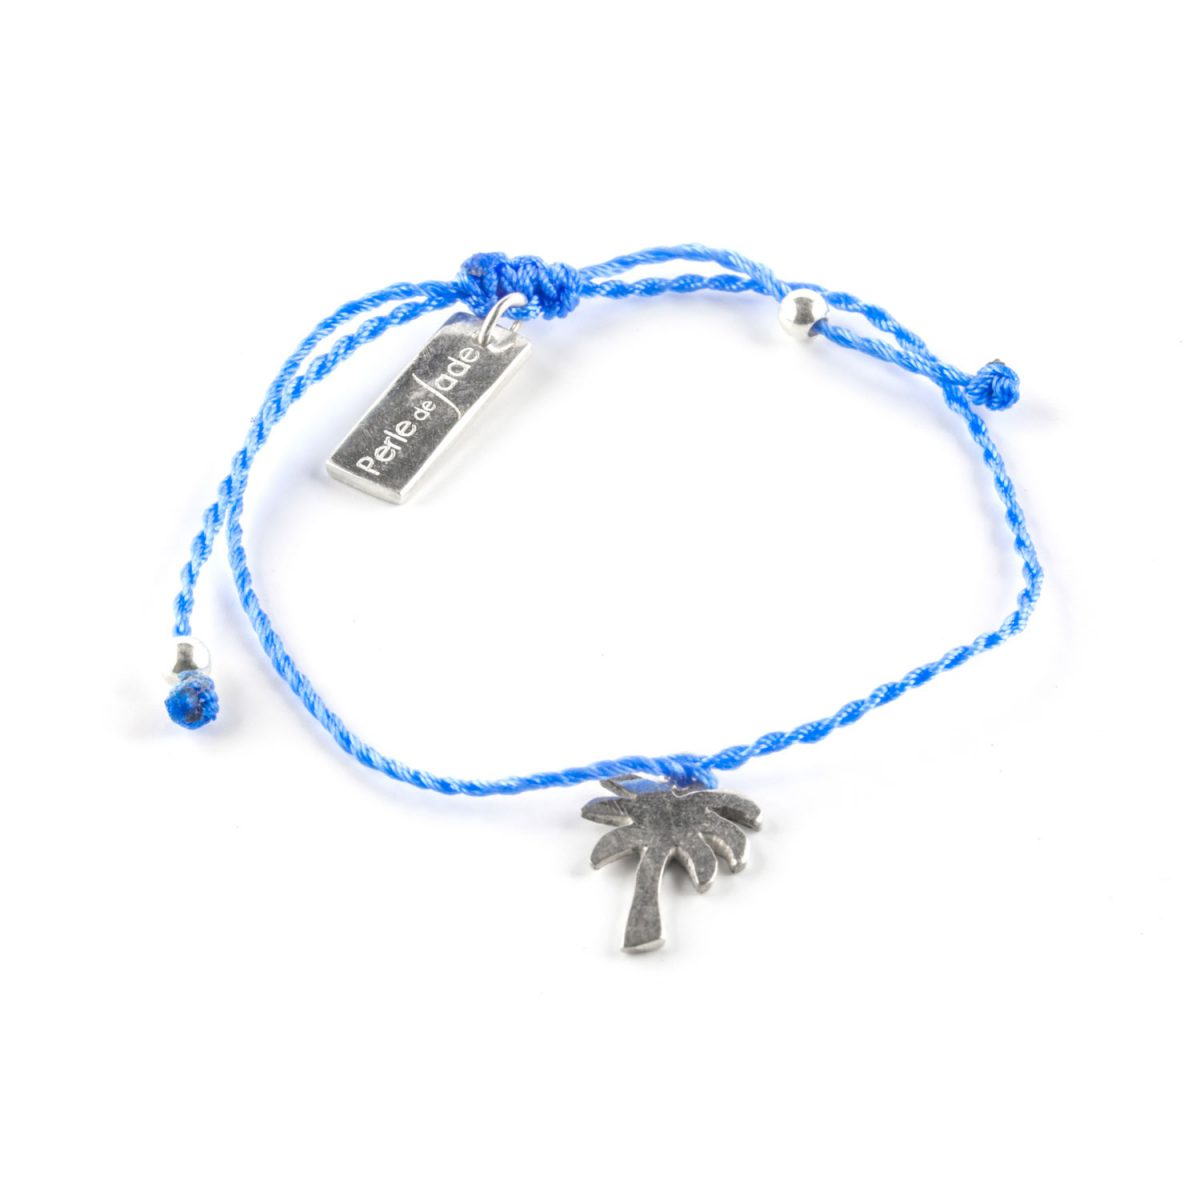 Child's blue cord bracelet with palm tree charm in silver